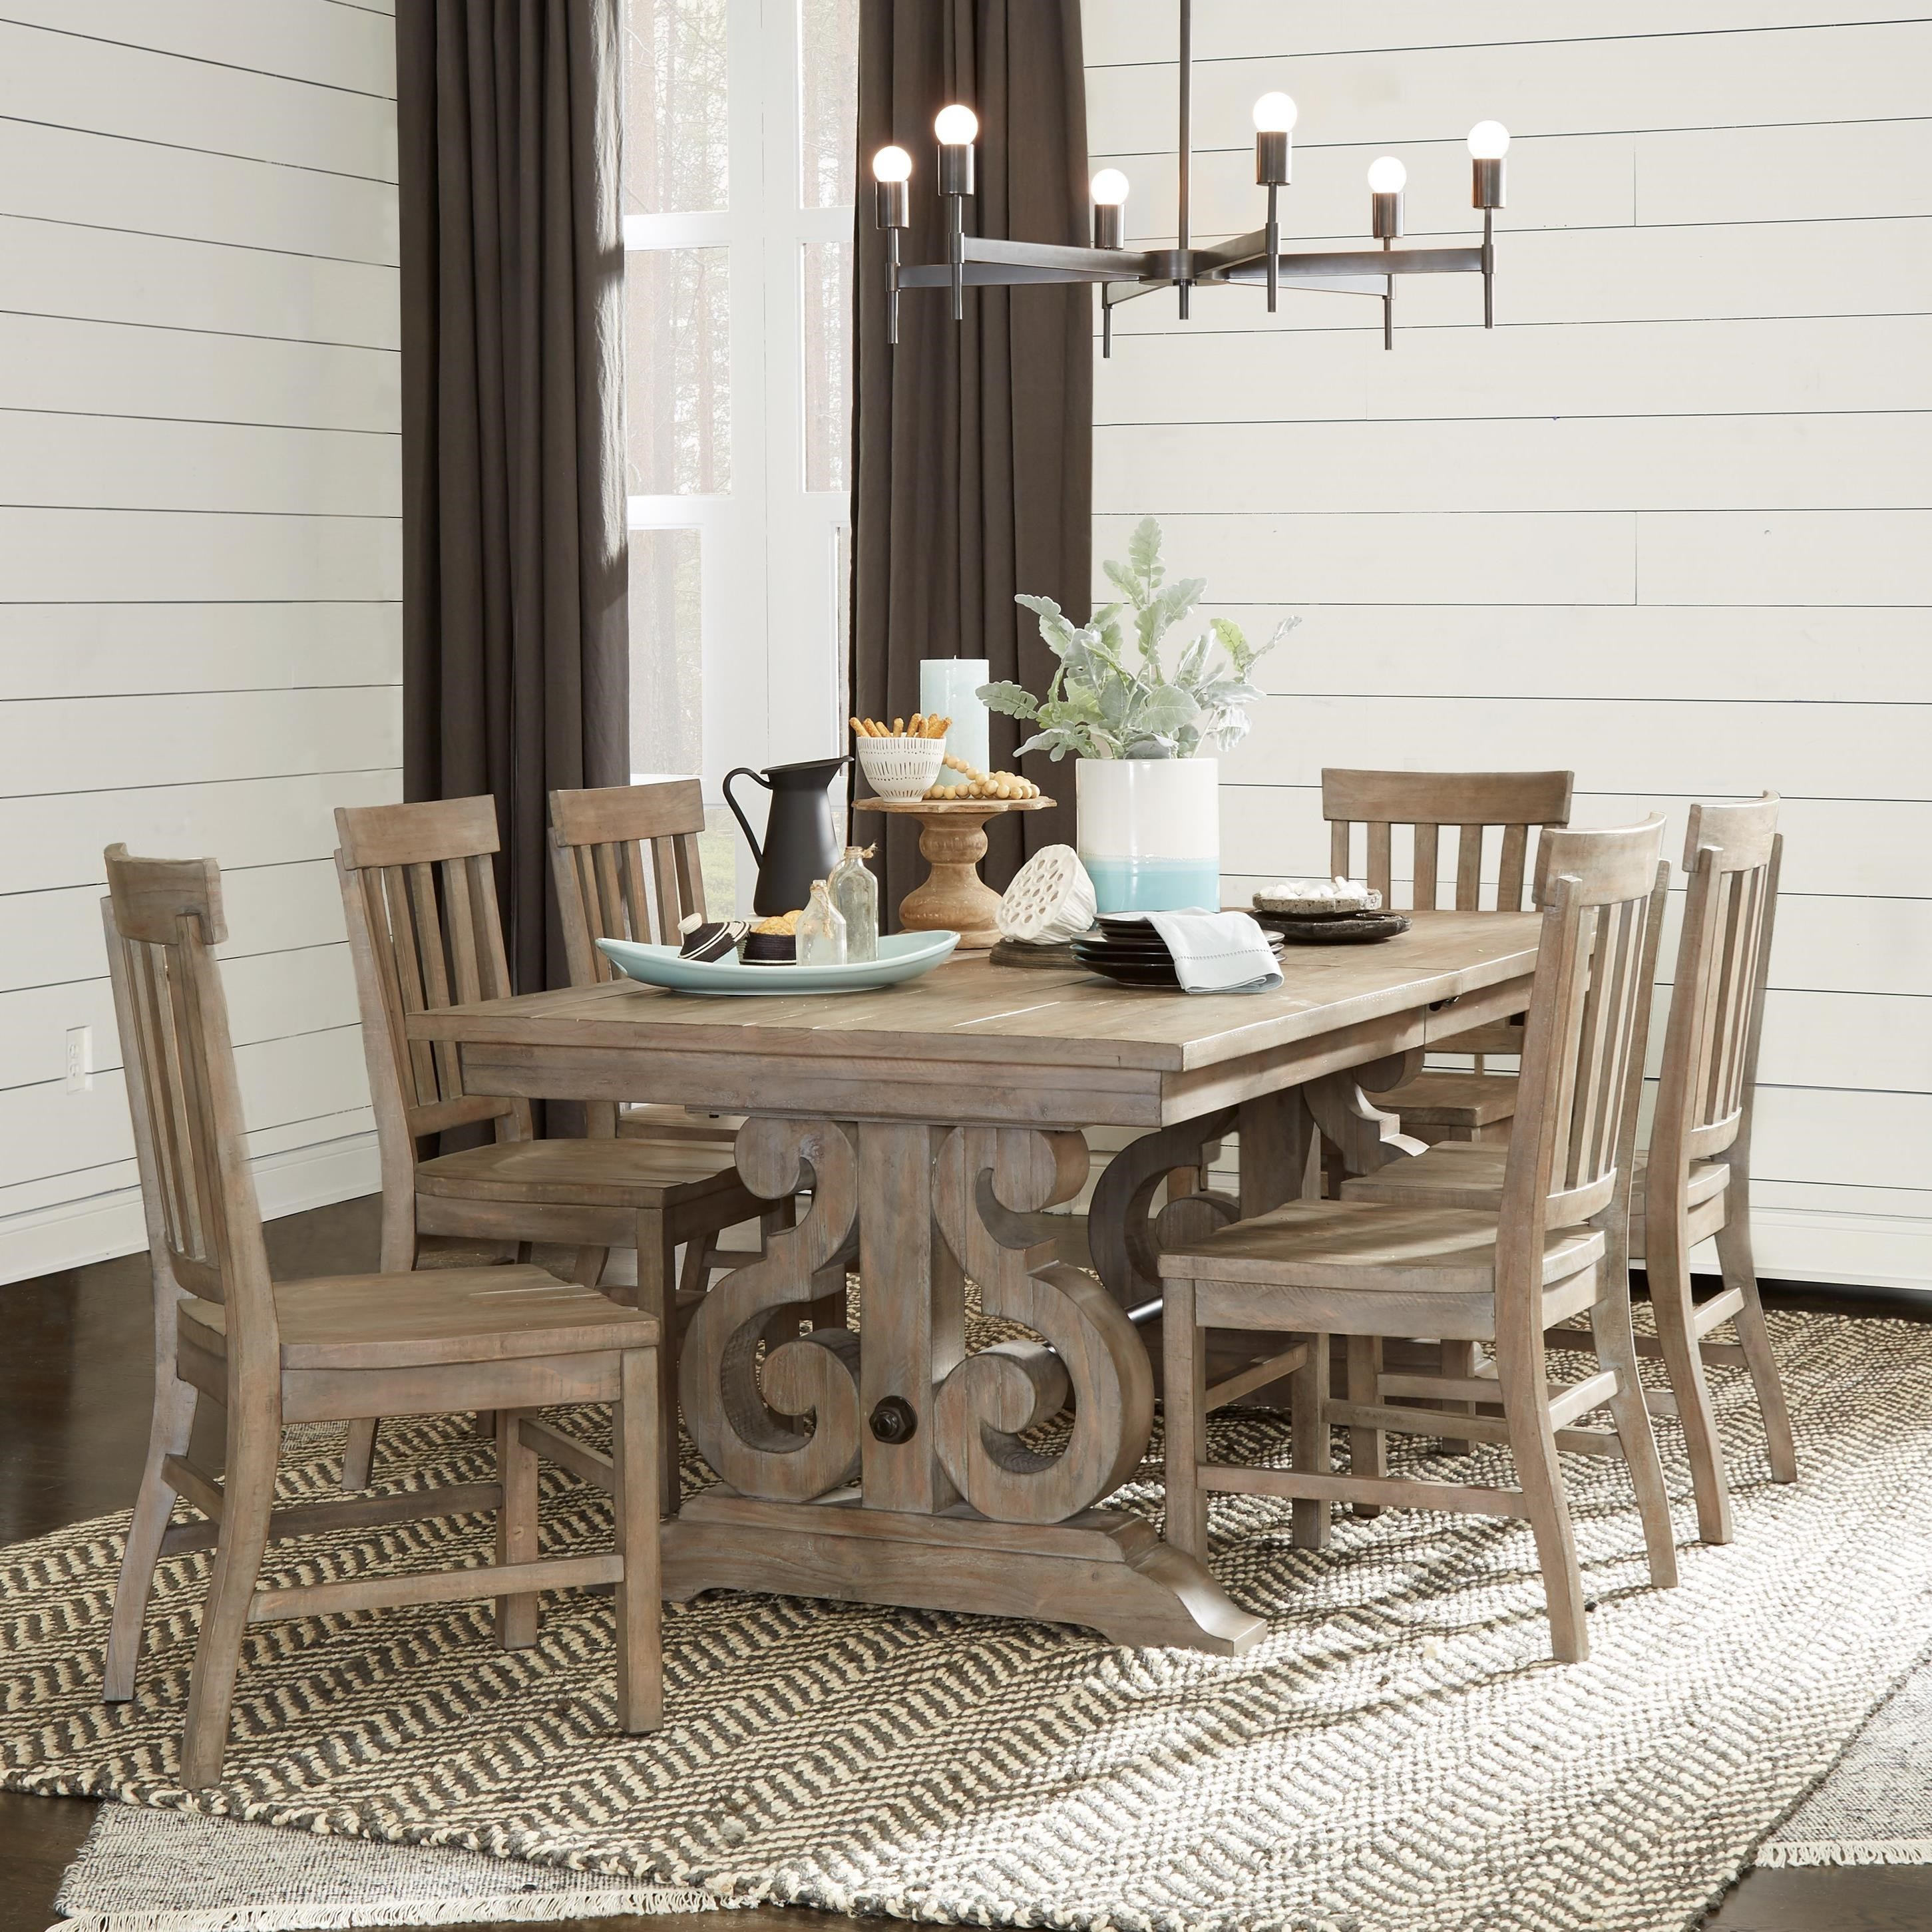 Tinley Park 7 Piece Dining Table Set by Magnussen Home at Baer's Furniture